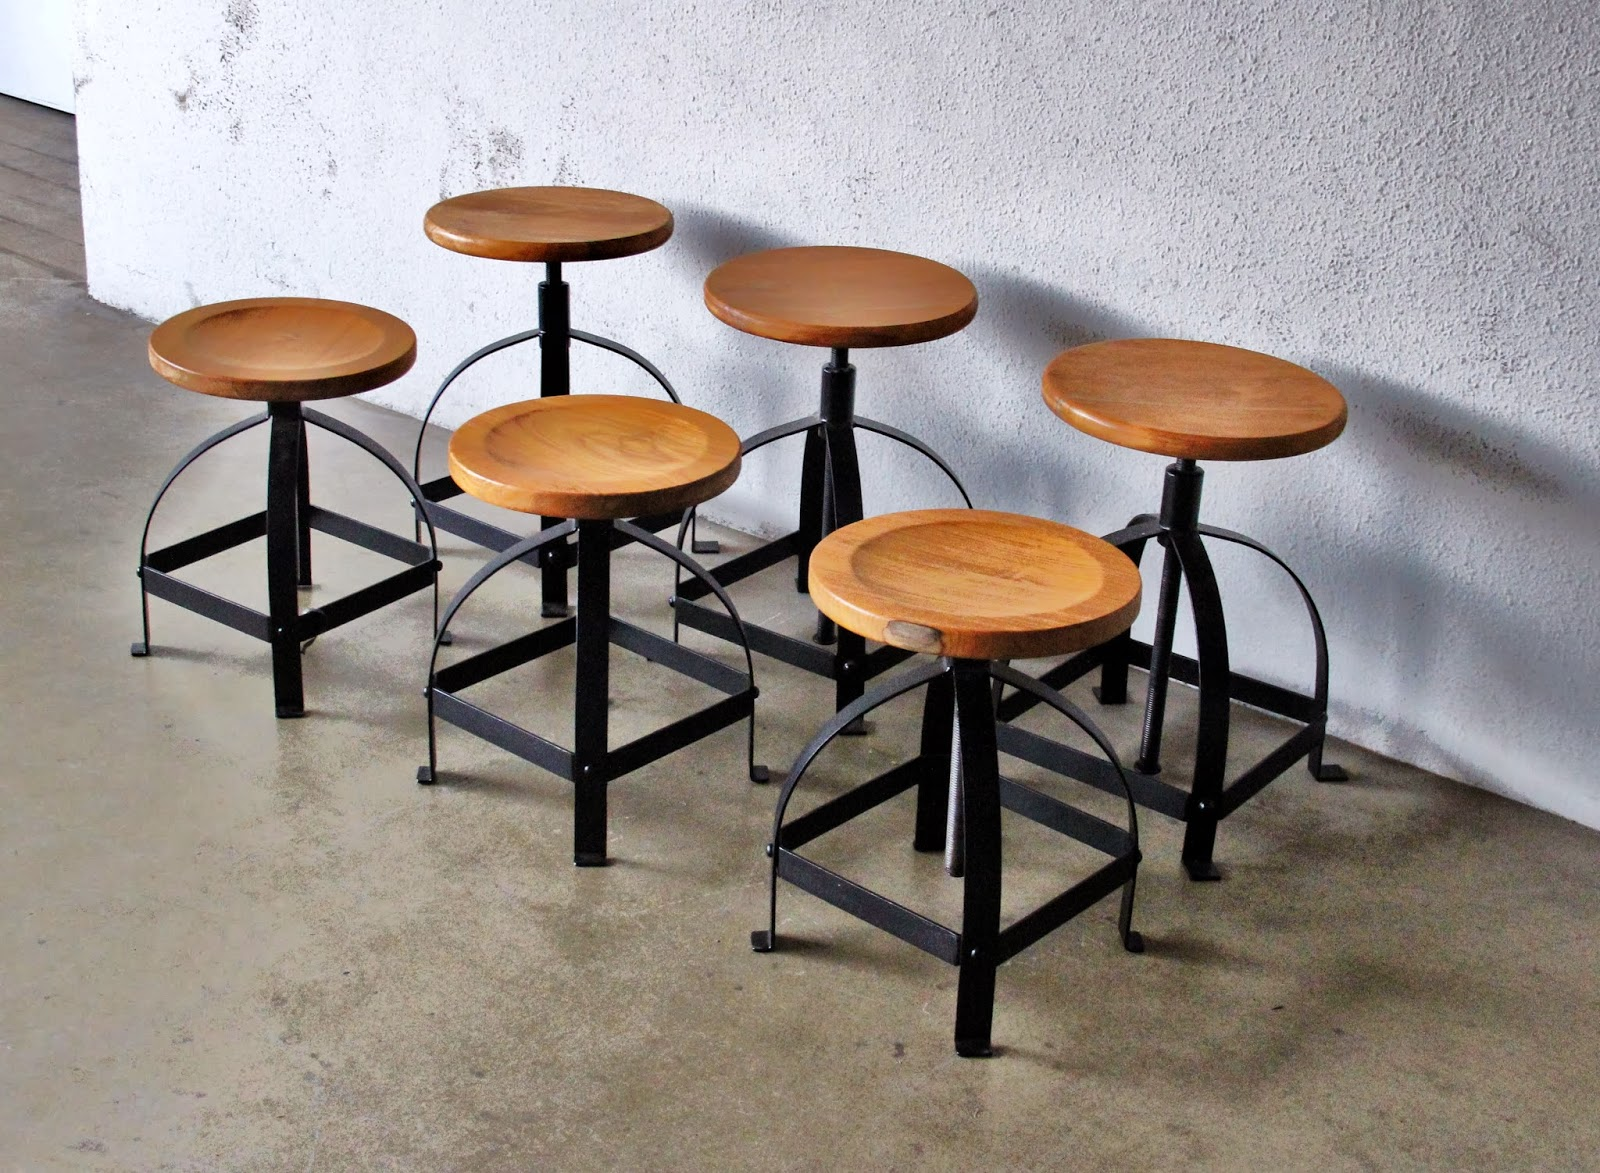 Stool Chair Second Hand Covers Prevent Cat Scratching Charm Furniture Stools Barstools Bar Chairs And Benches